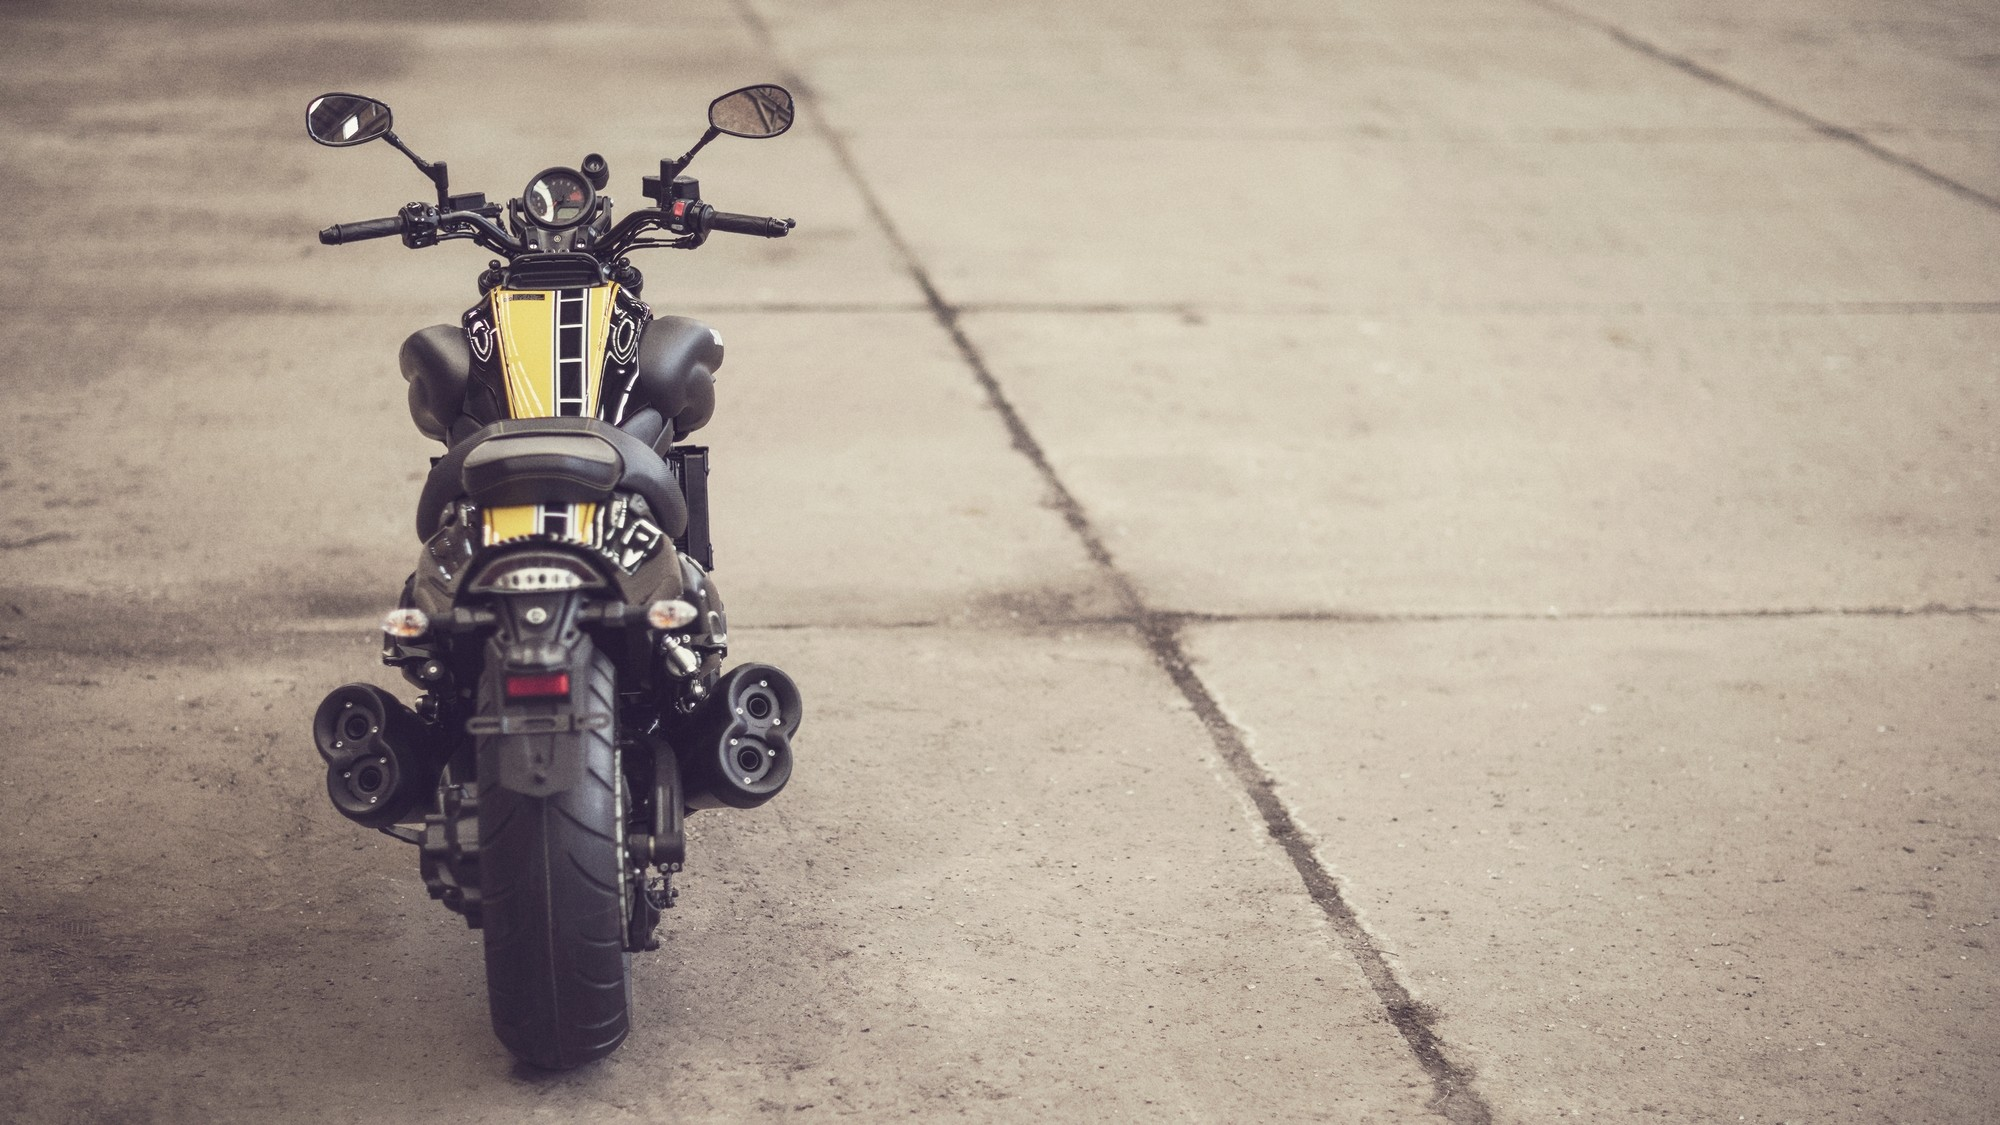 Best Bike App >> Yamaha VMAX 60th Anniversary Shows How the Bike Should Really Be Like - autoevolution